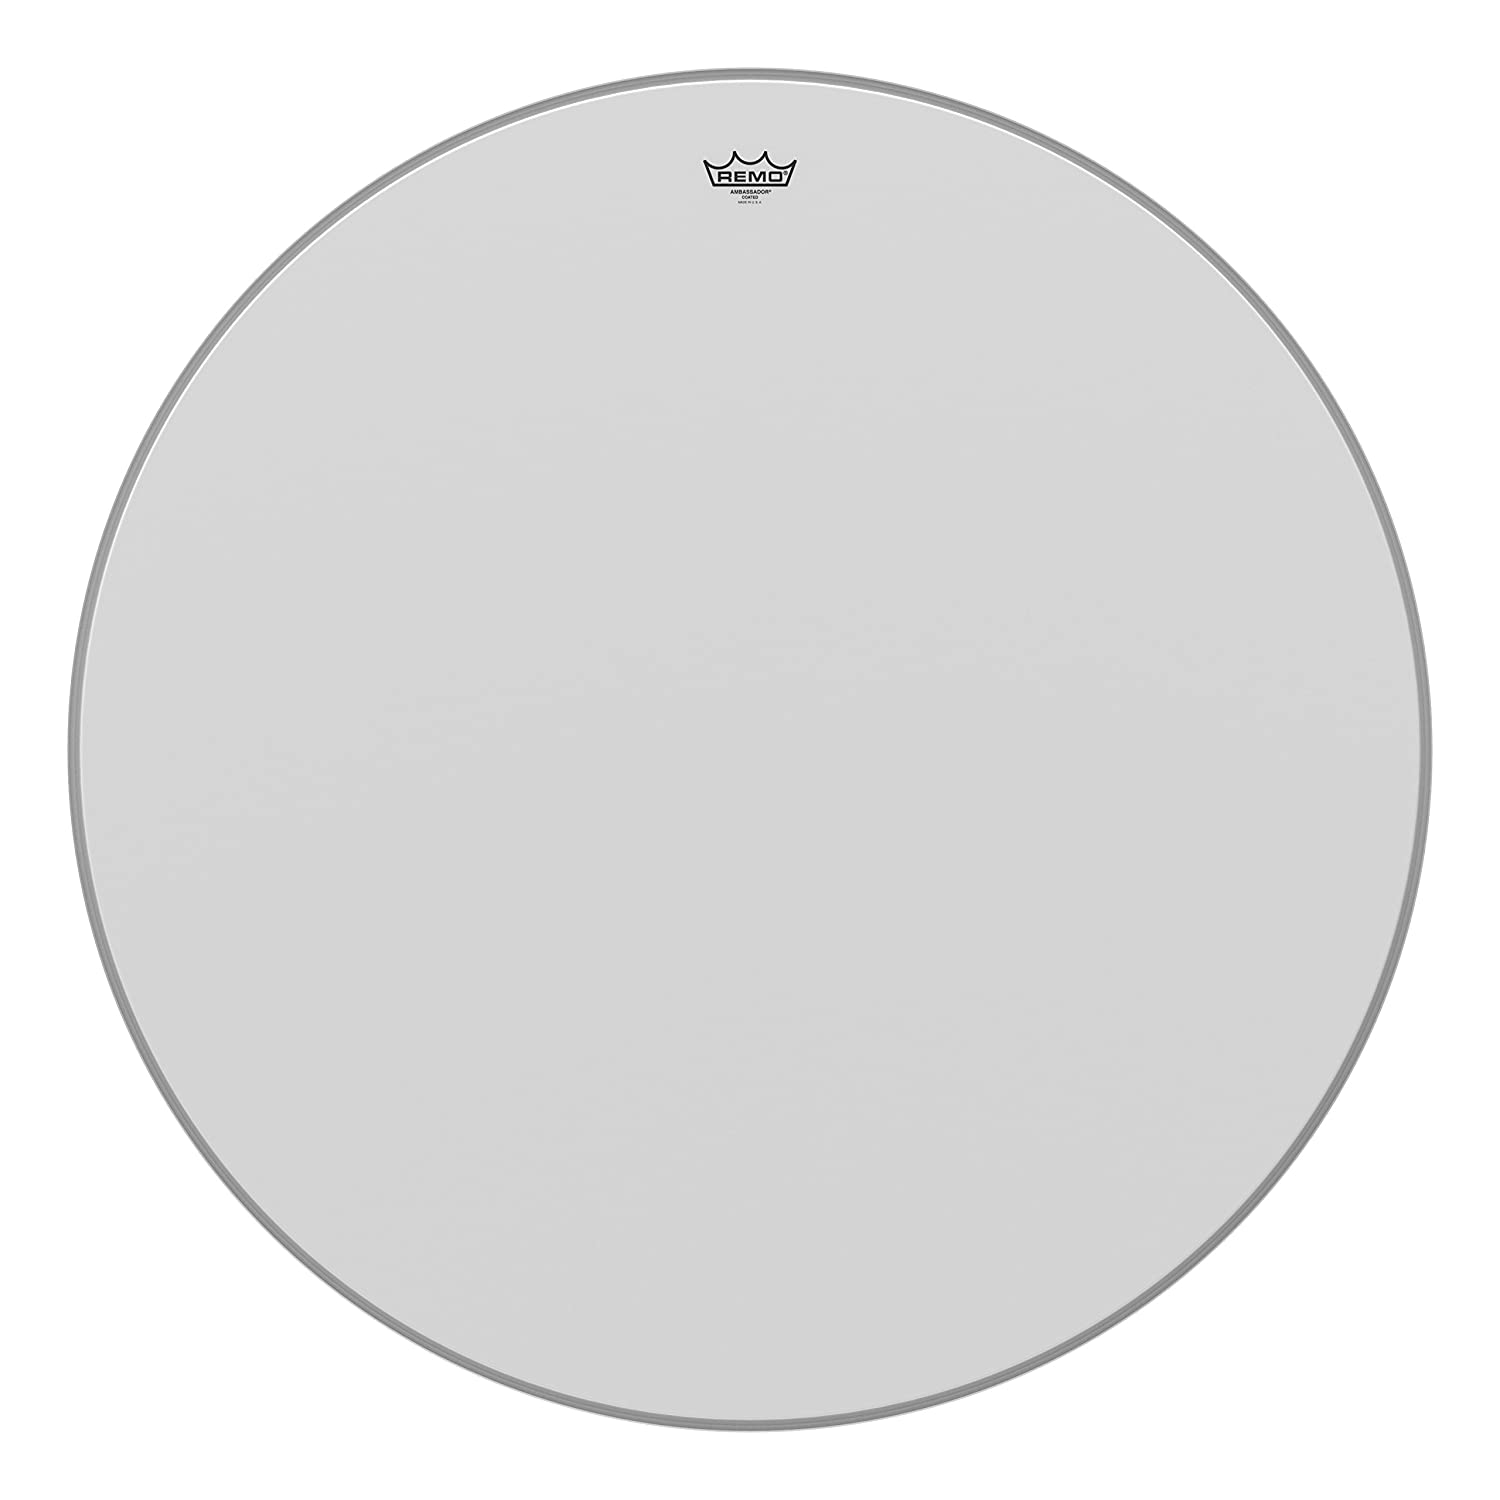 Remo Ambassador Coated Drum Head - 13 Inch KMC Music Inc BA-0113-00